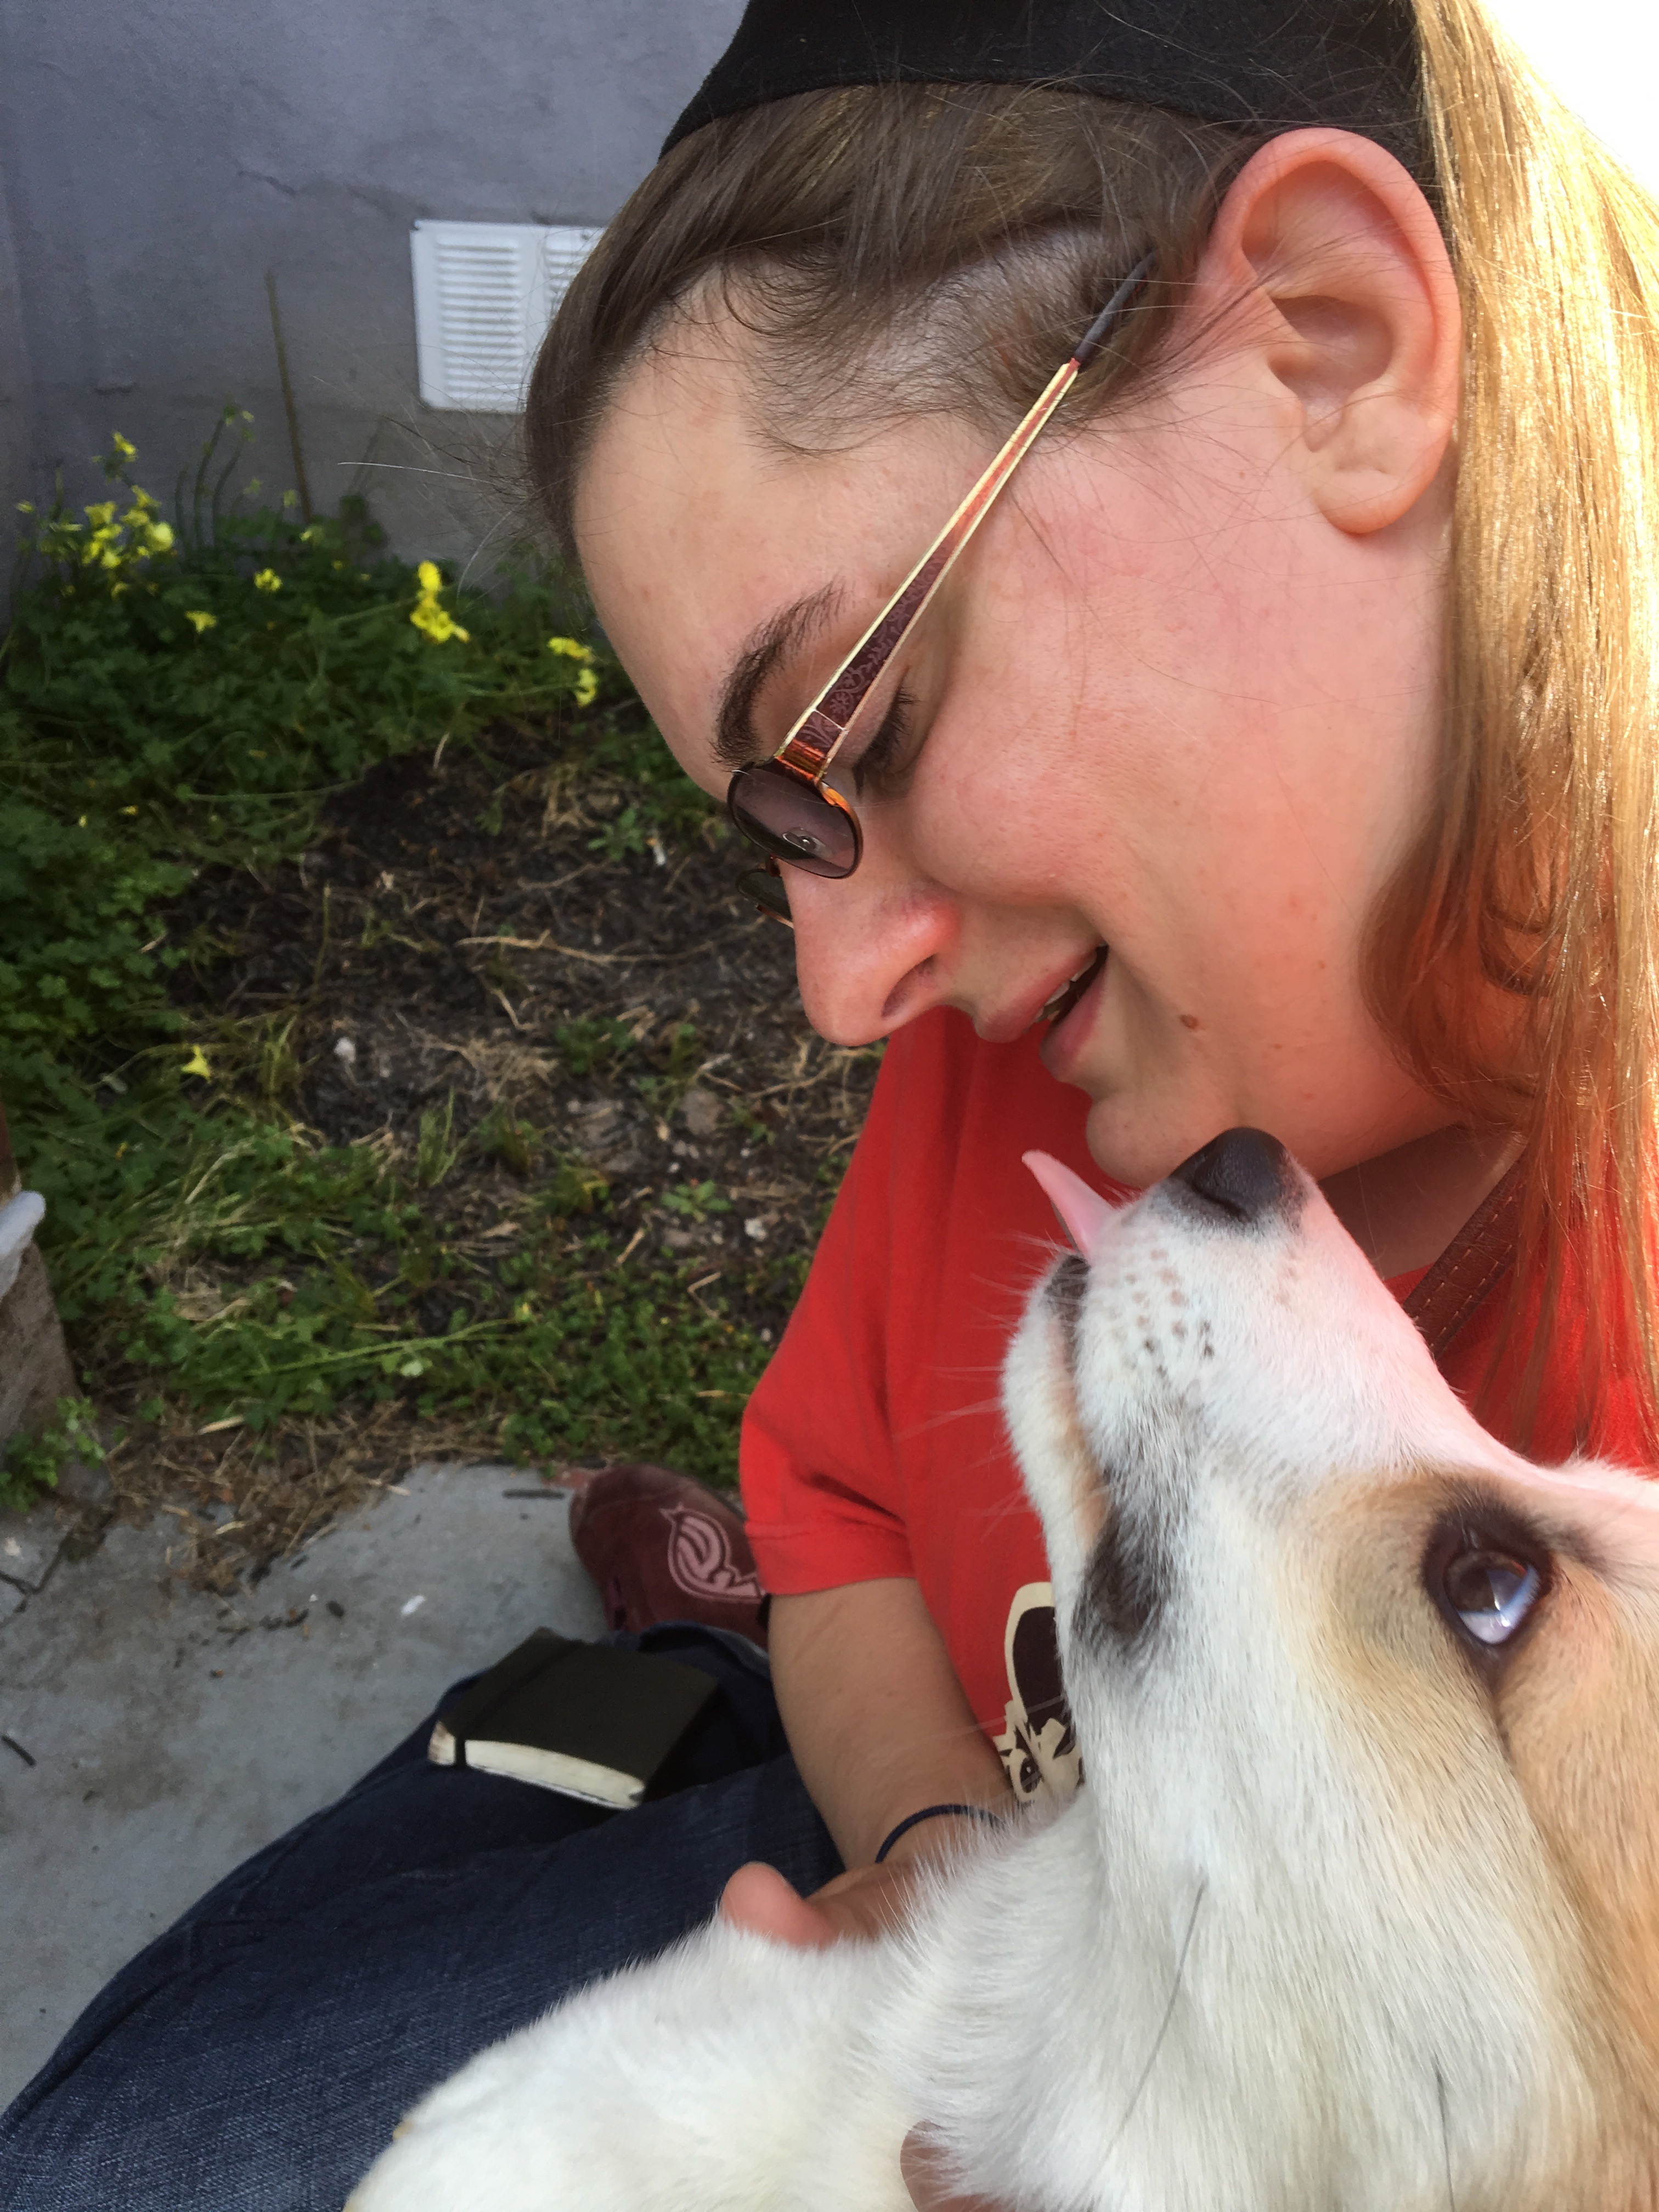 Pembroke Welsh Corgi Puppy Licking Woman's Face